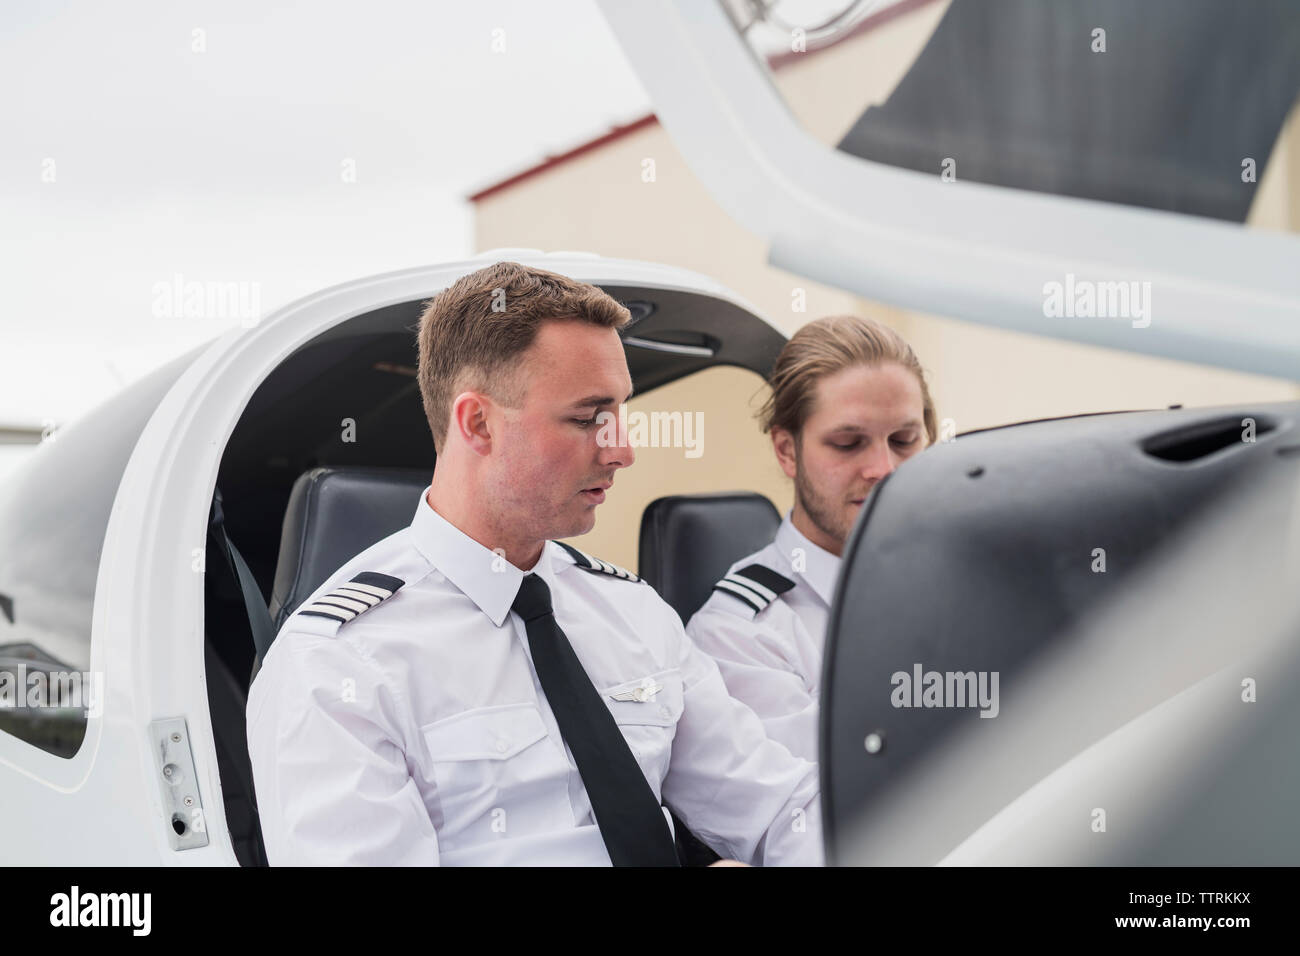 Male pilot guiding trainee while sitting in airplane against sky at airport - Stock Image